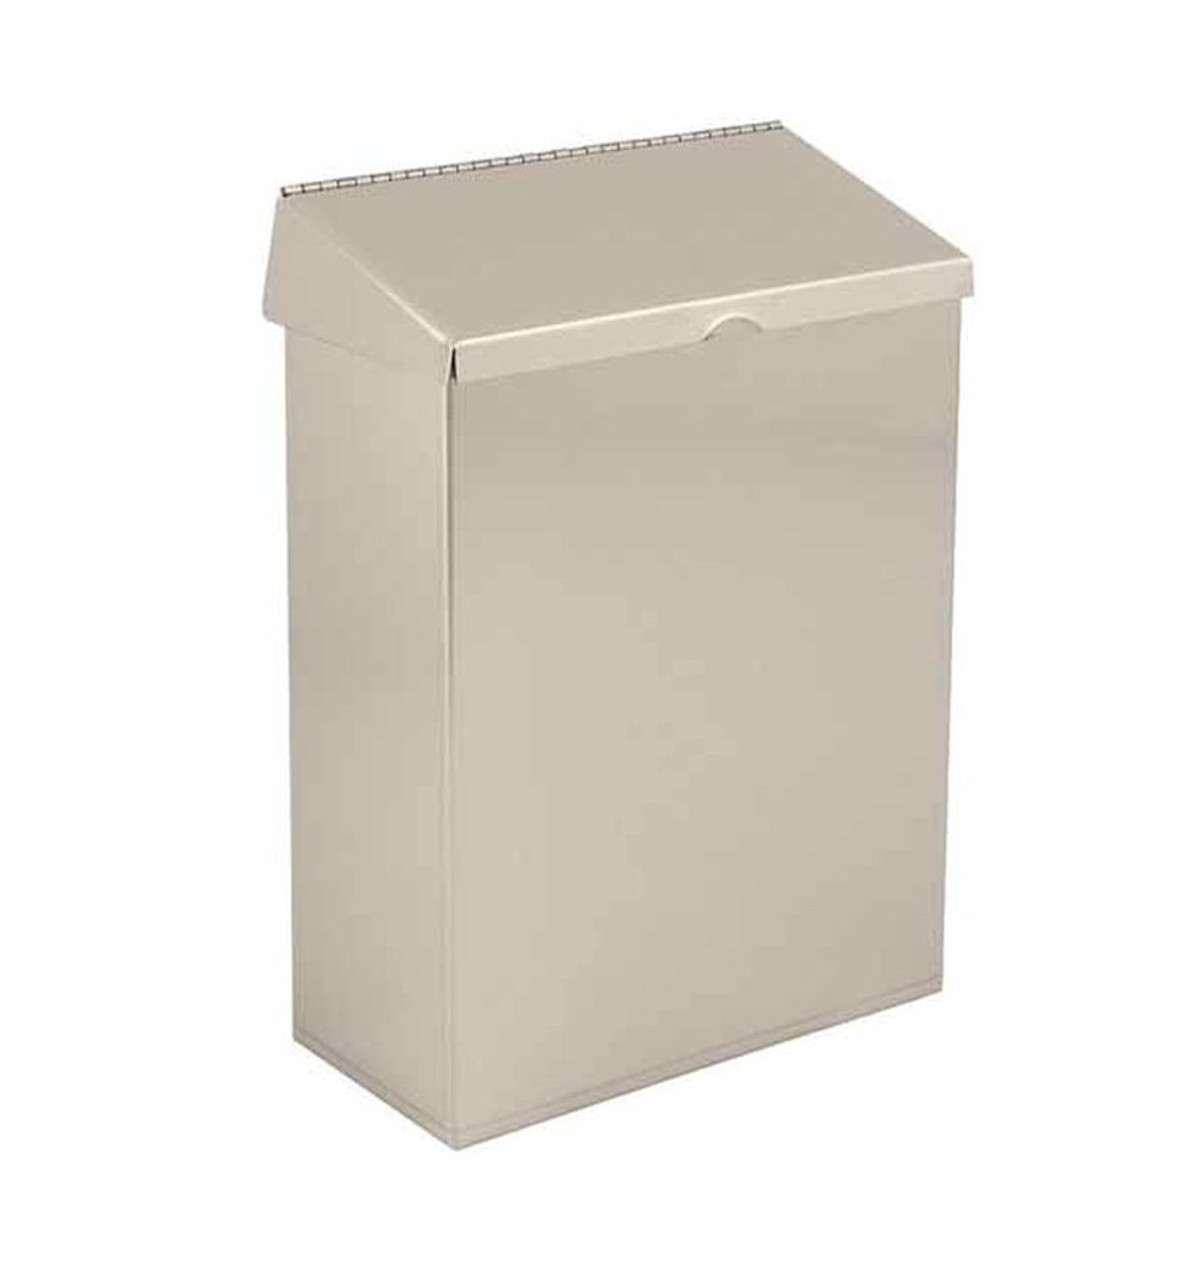 Commercial Delta Gamco 48100-SS Stainless Steel Sanitary Napkin Receptacle